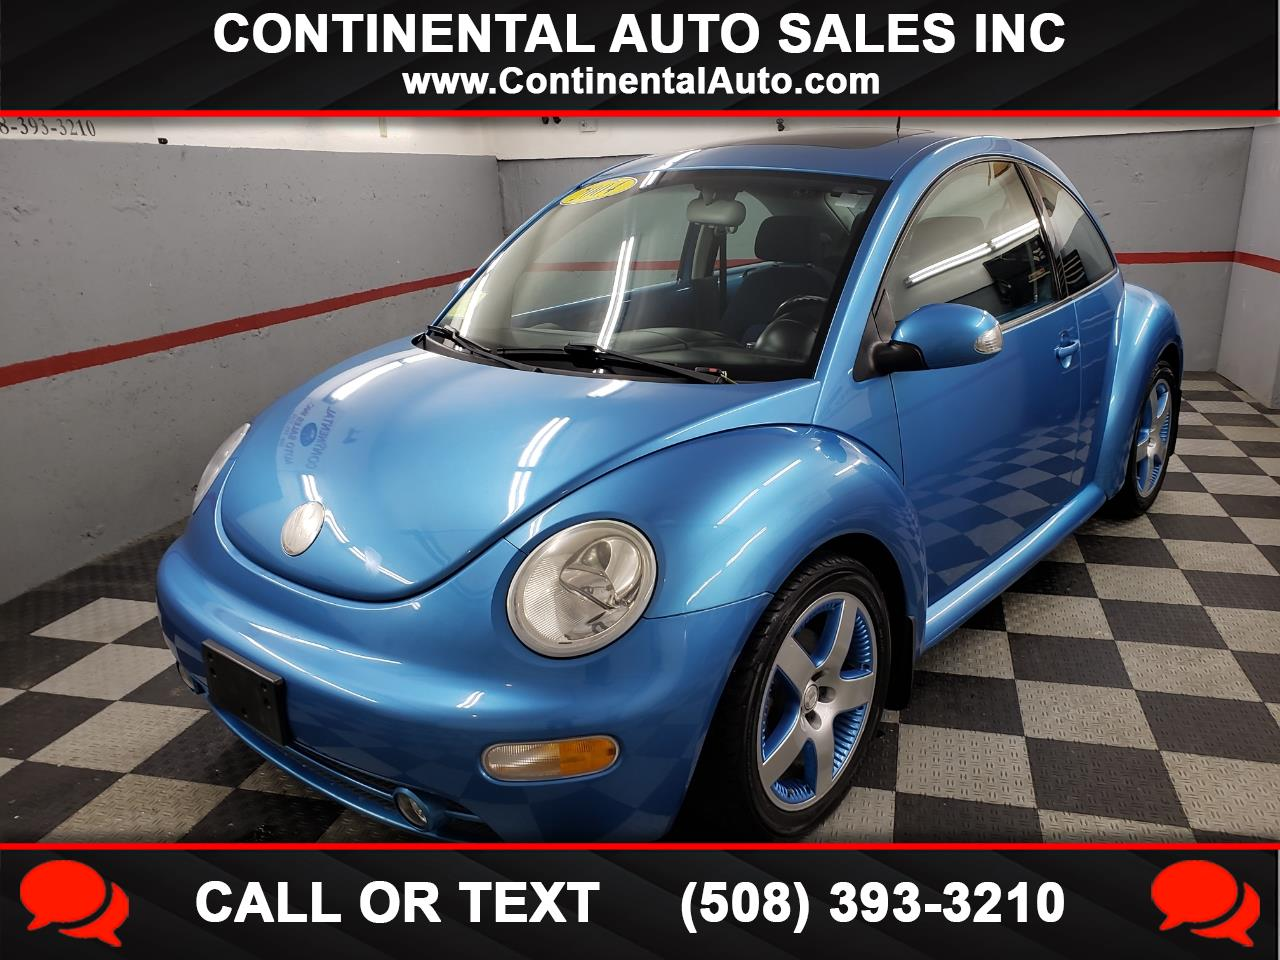 Volkswagen New Beetle Coupe 2dr Cpe Satellite Blue 2004